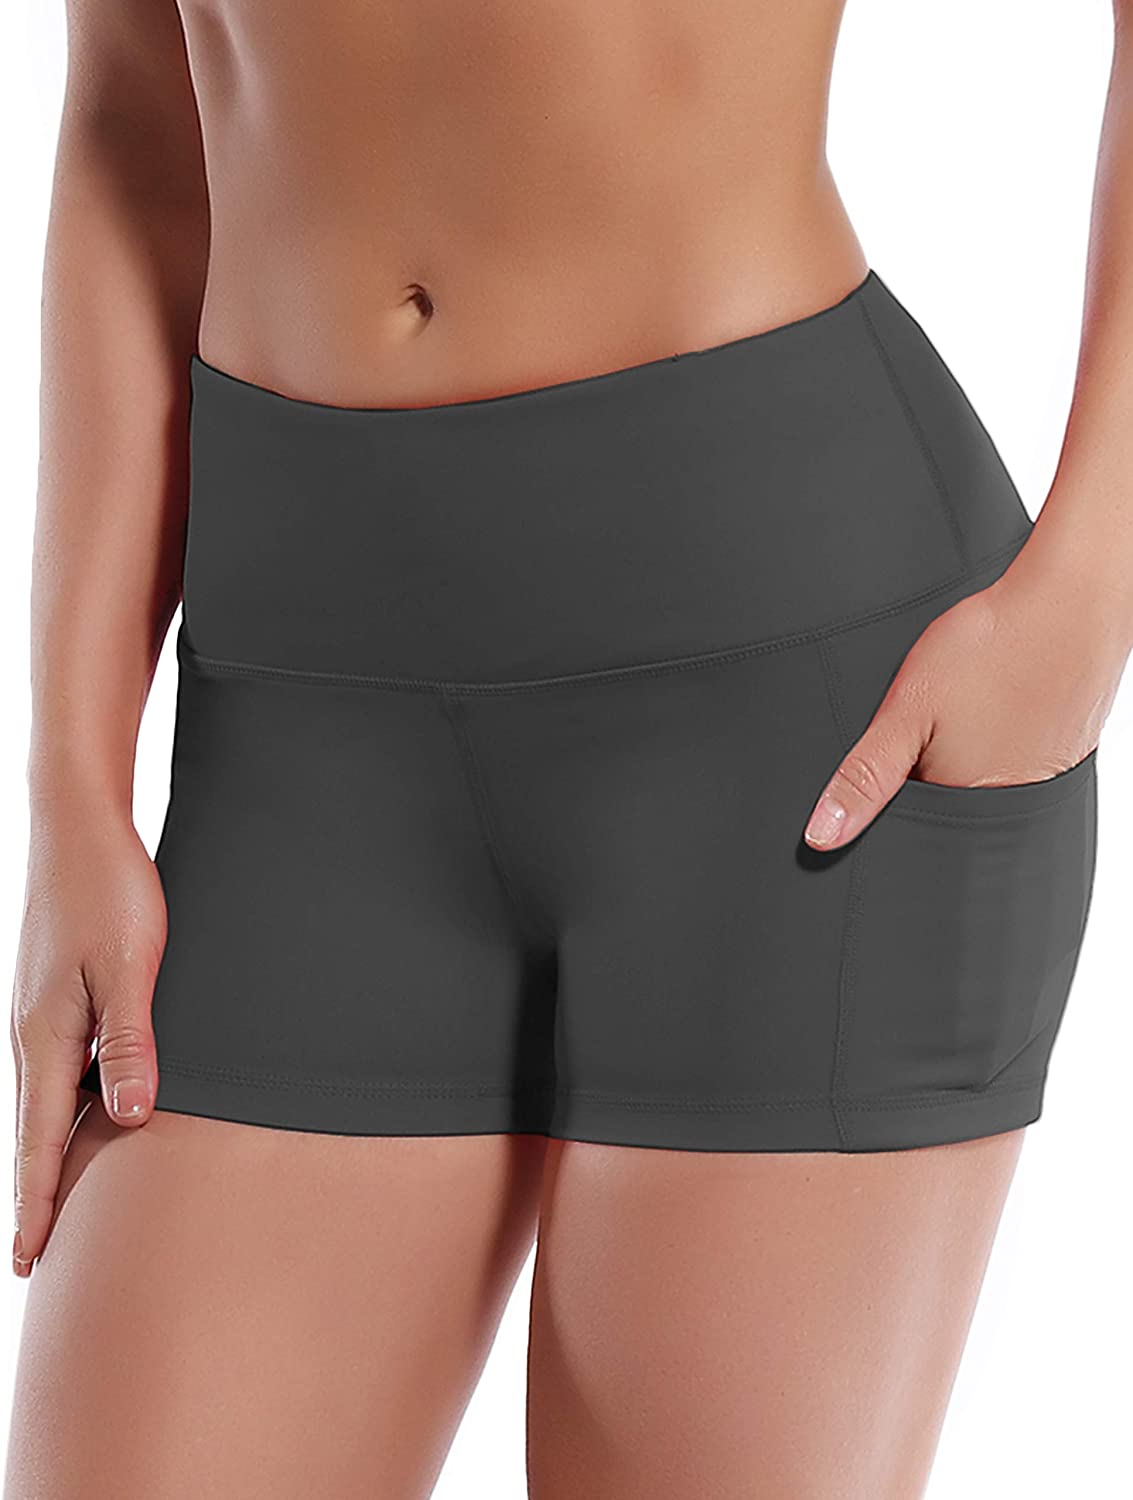 BUBBLELIME 8 Basic//Out Pockets Stretch Yoga Shorts for Women Tummy Control Moisture Wicking Workout Running Shorts